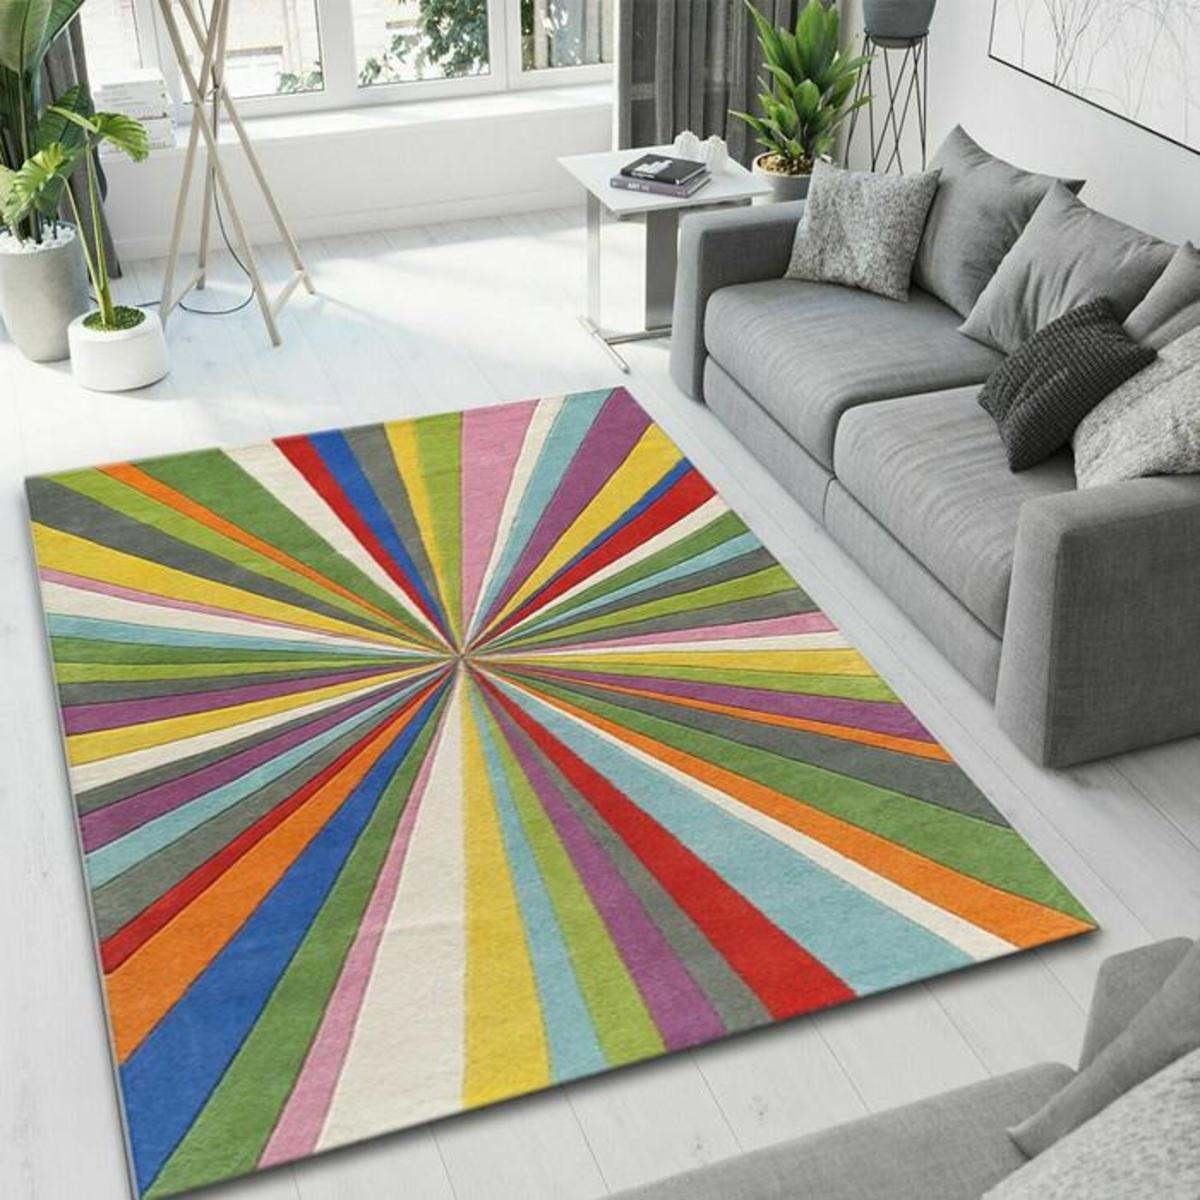 6-tips-for-picking-kids-rugs